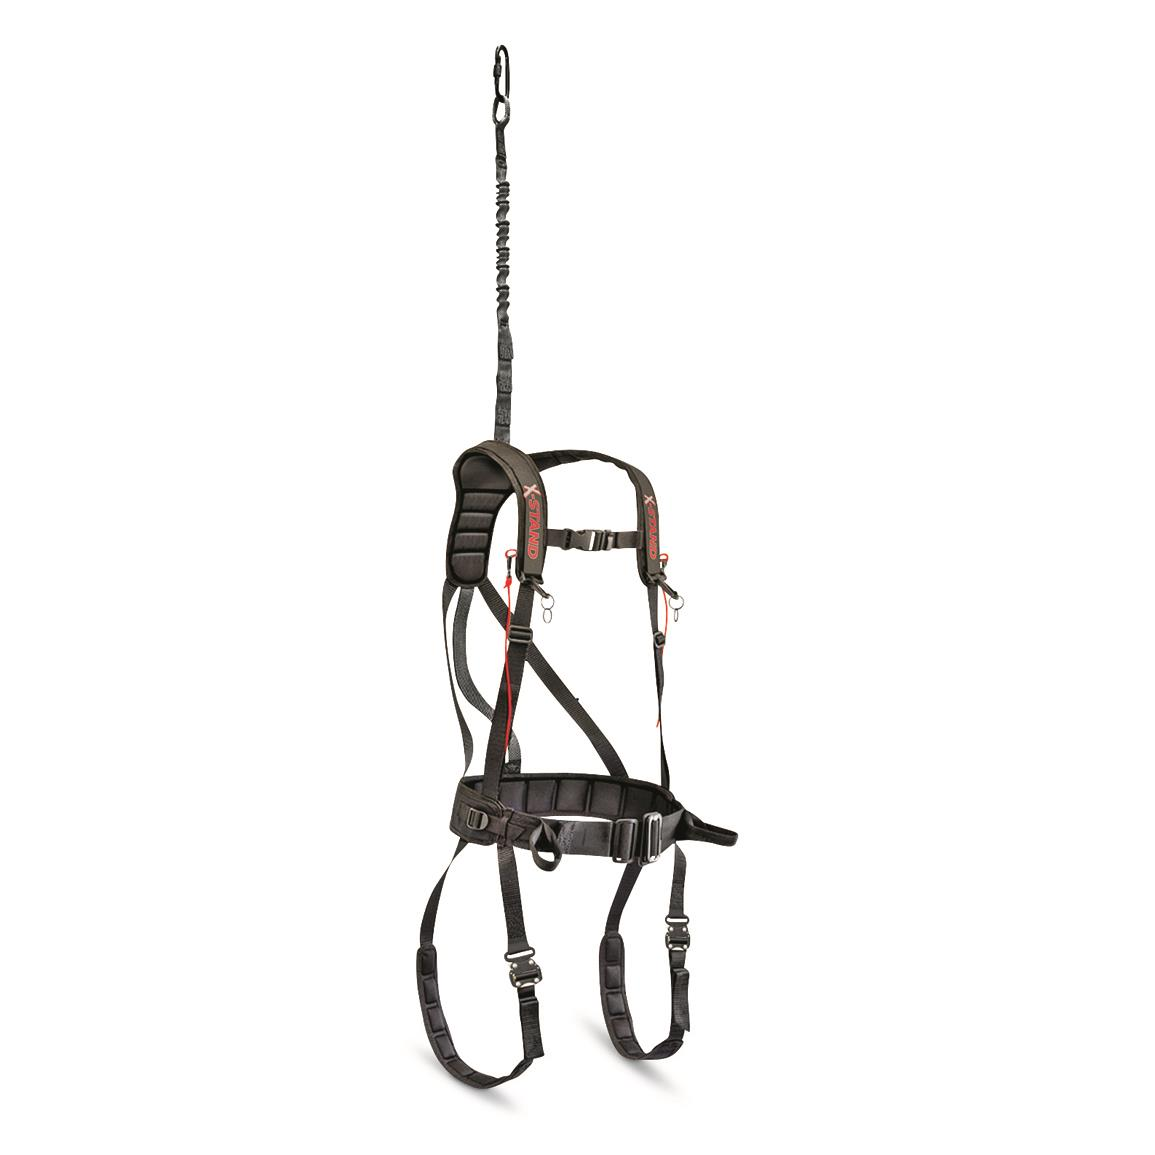 x-stand x-factor tree stand safety harness